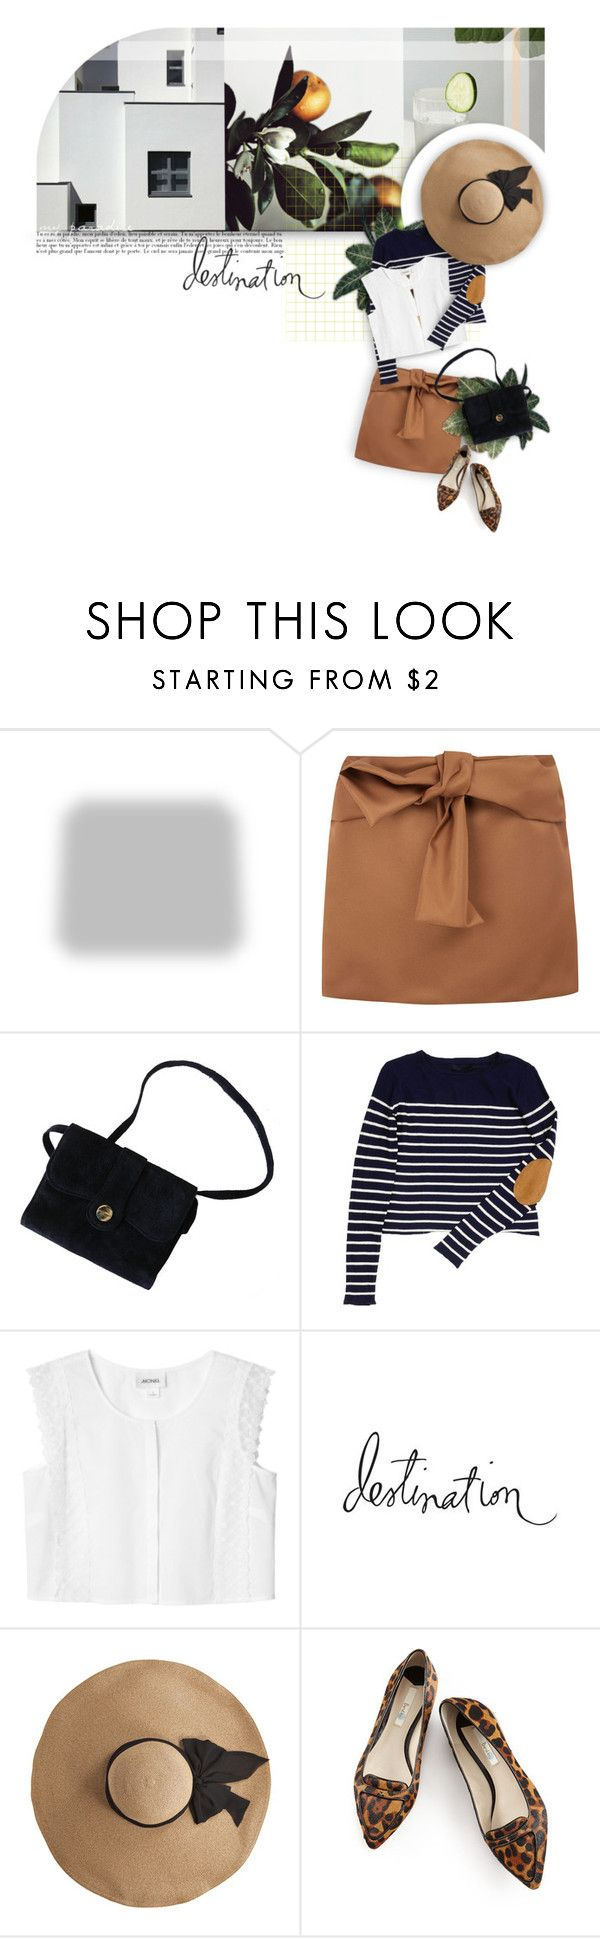 """""""Orange Marmalade"""" by kearalachelle ❤ liked on Polyvore featuring Shabby Chic, N°21, Monki, Eugenia Kim, Boden, Boy Meets Girl, 1000 and inspiredbyfriends"""